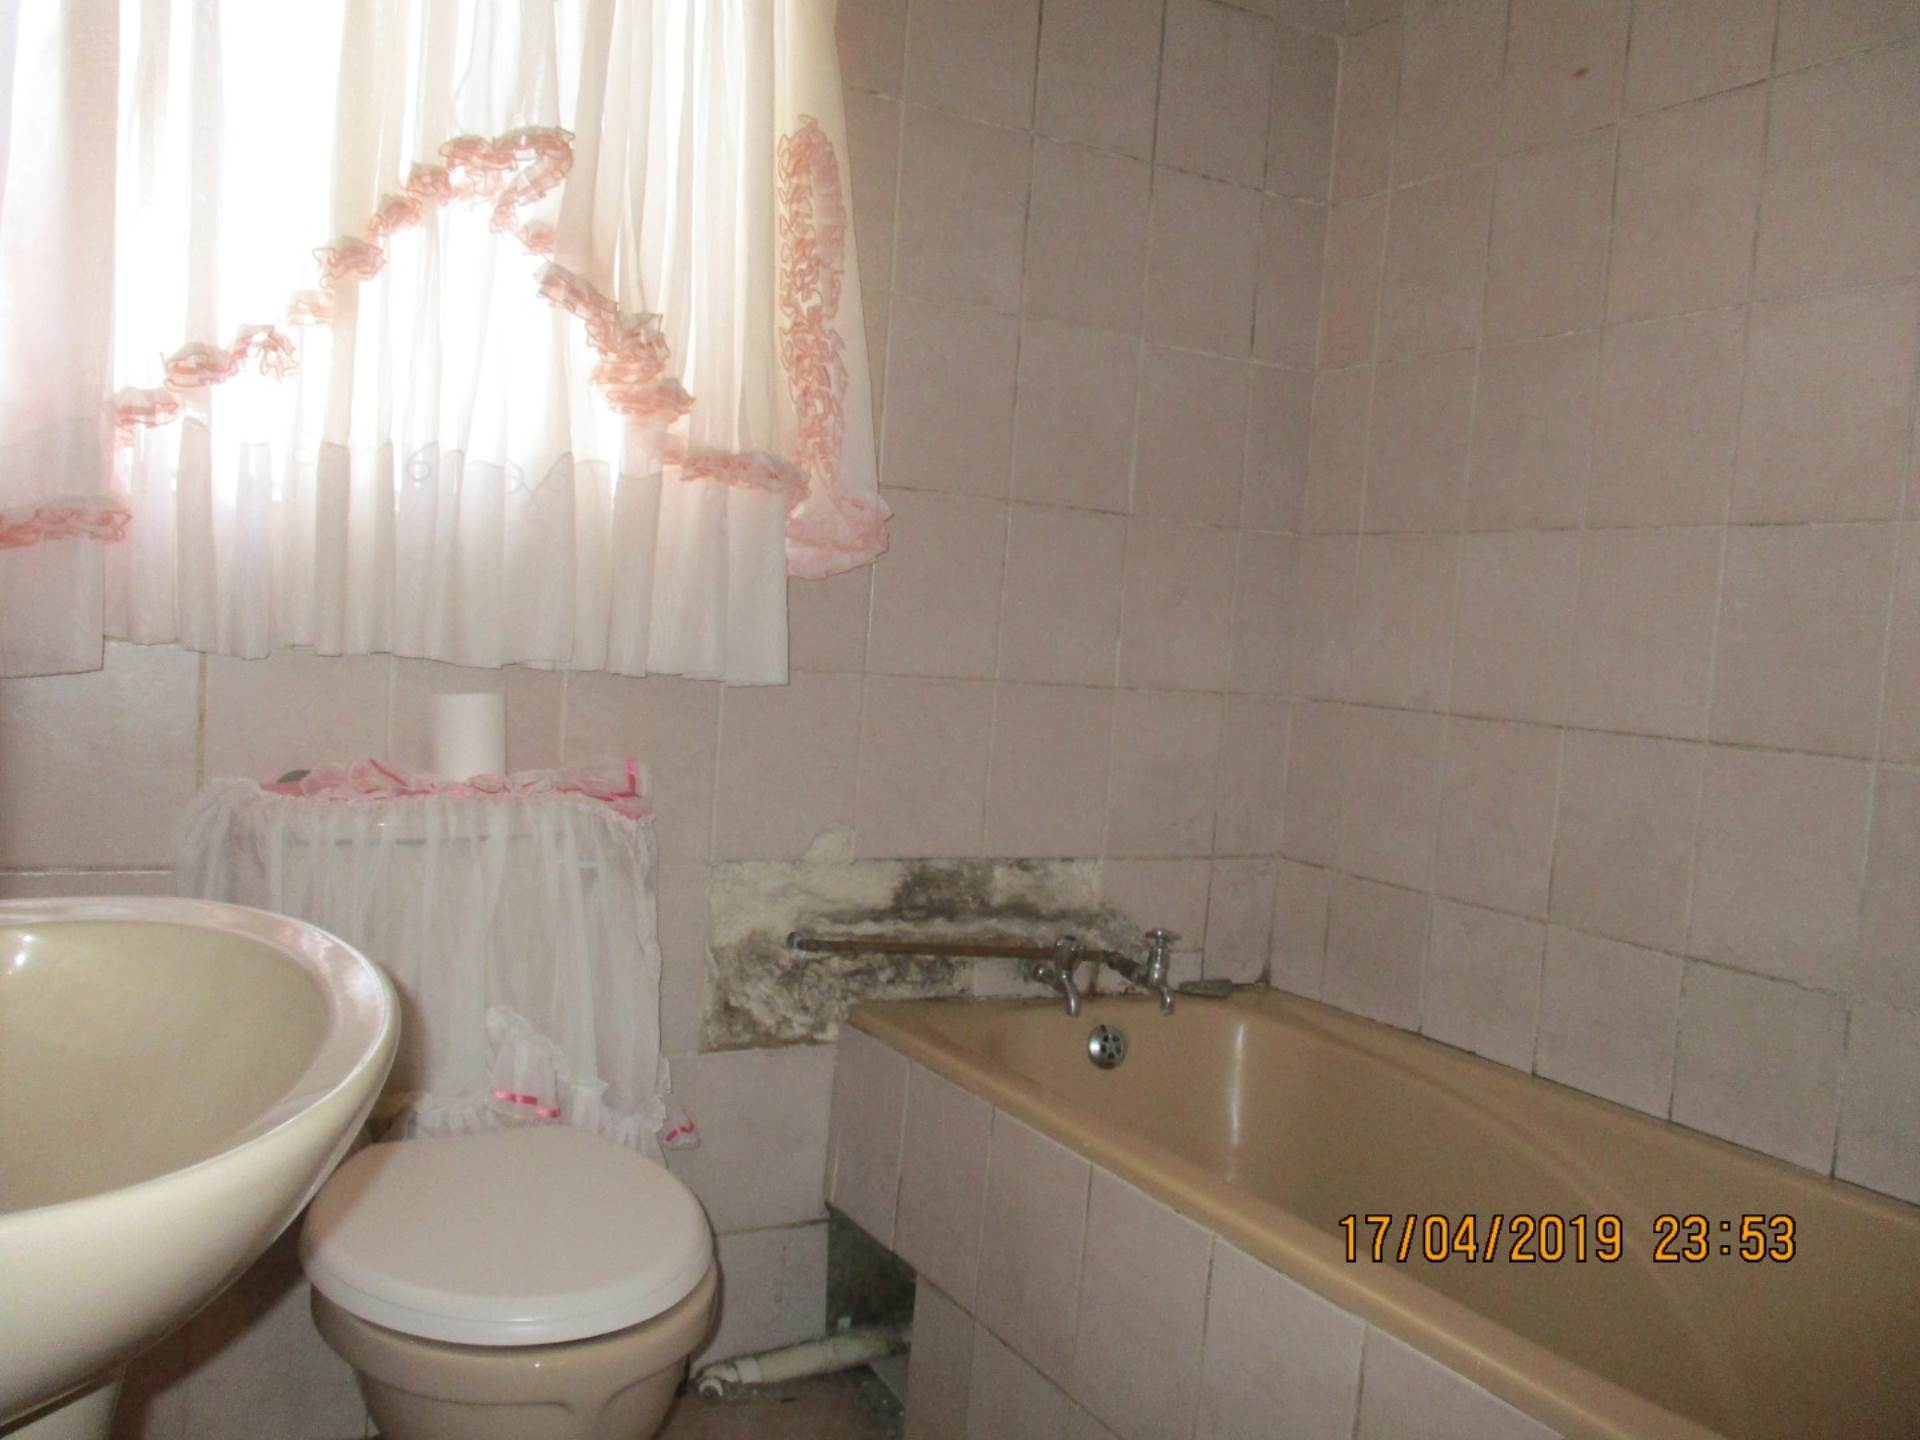 House For Sale In Meadowlands Zone 6, Soweto, Gauteng for R 550,000